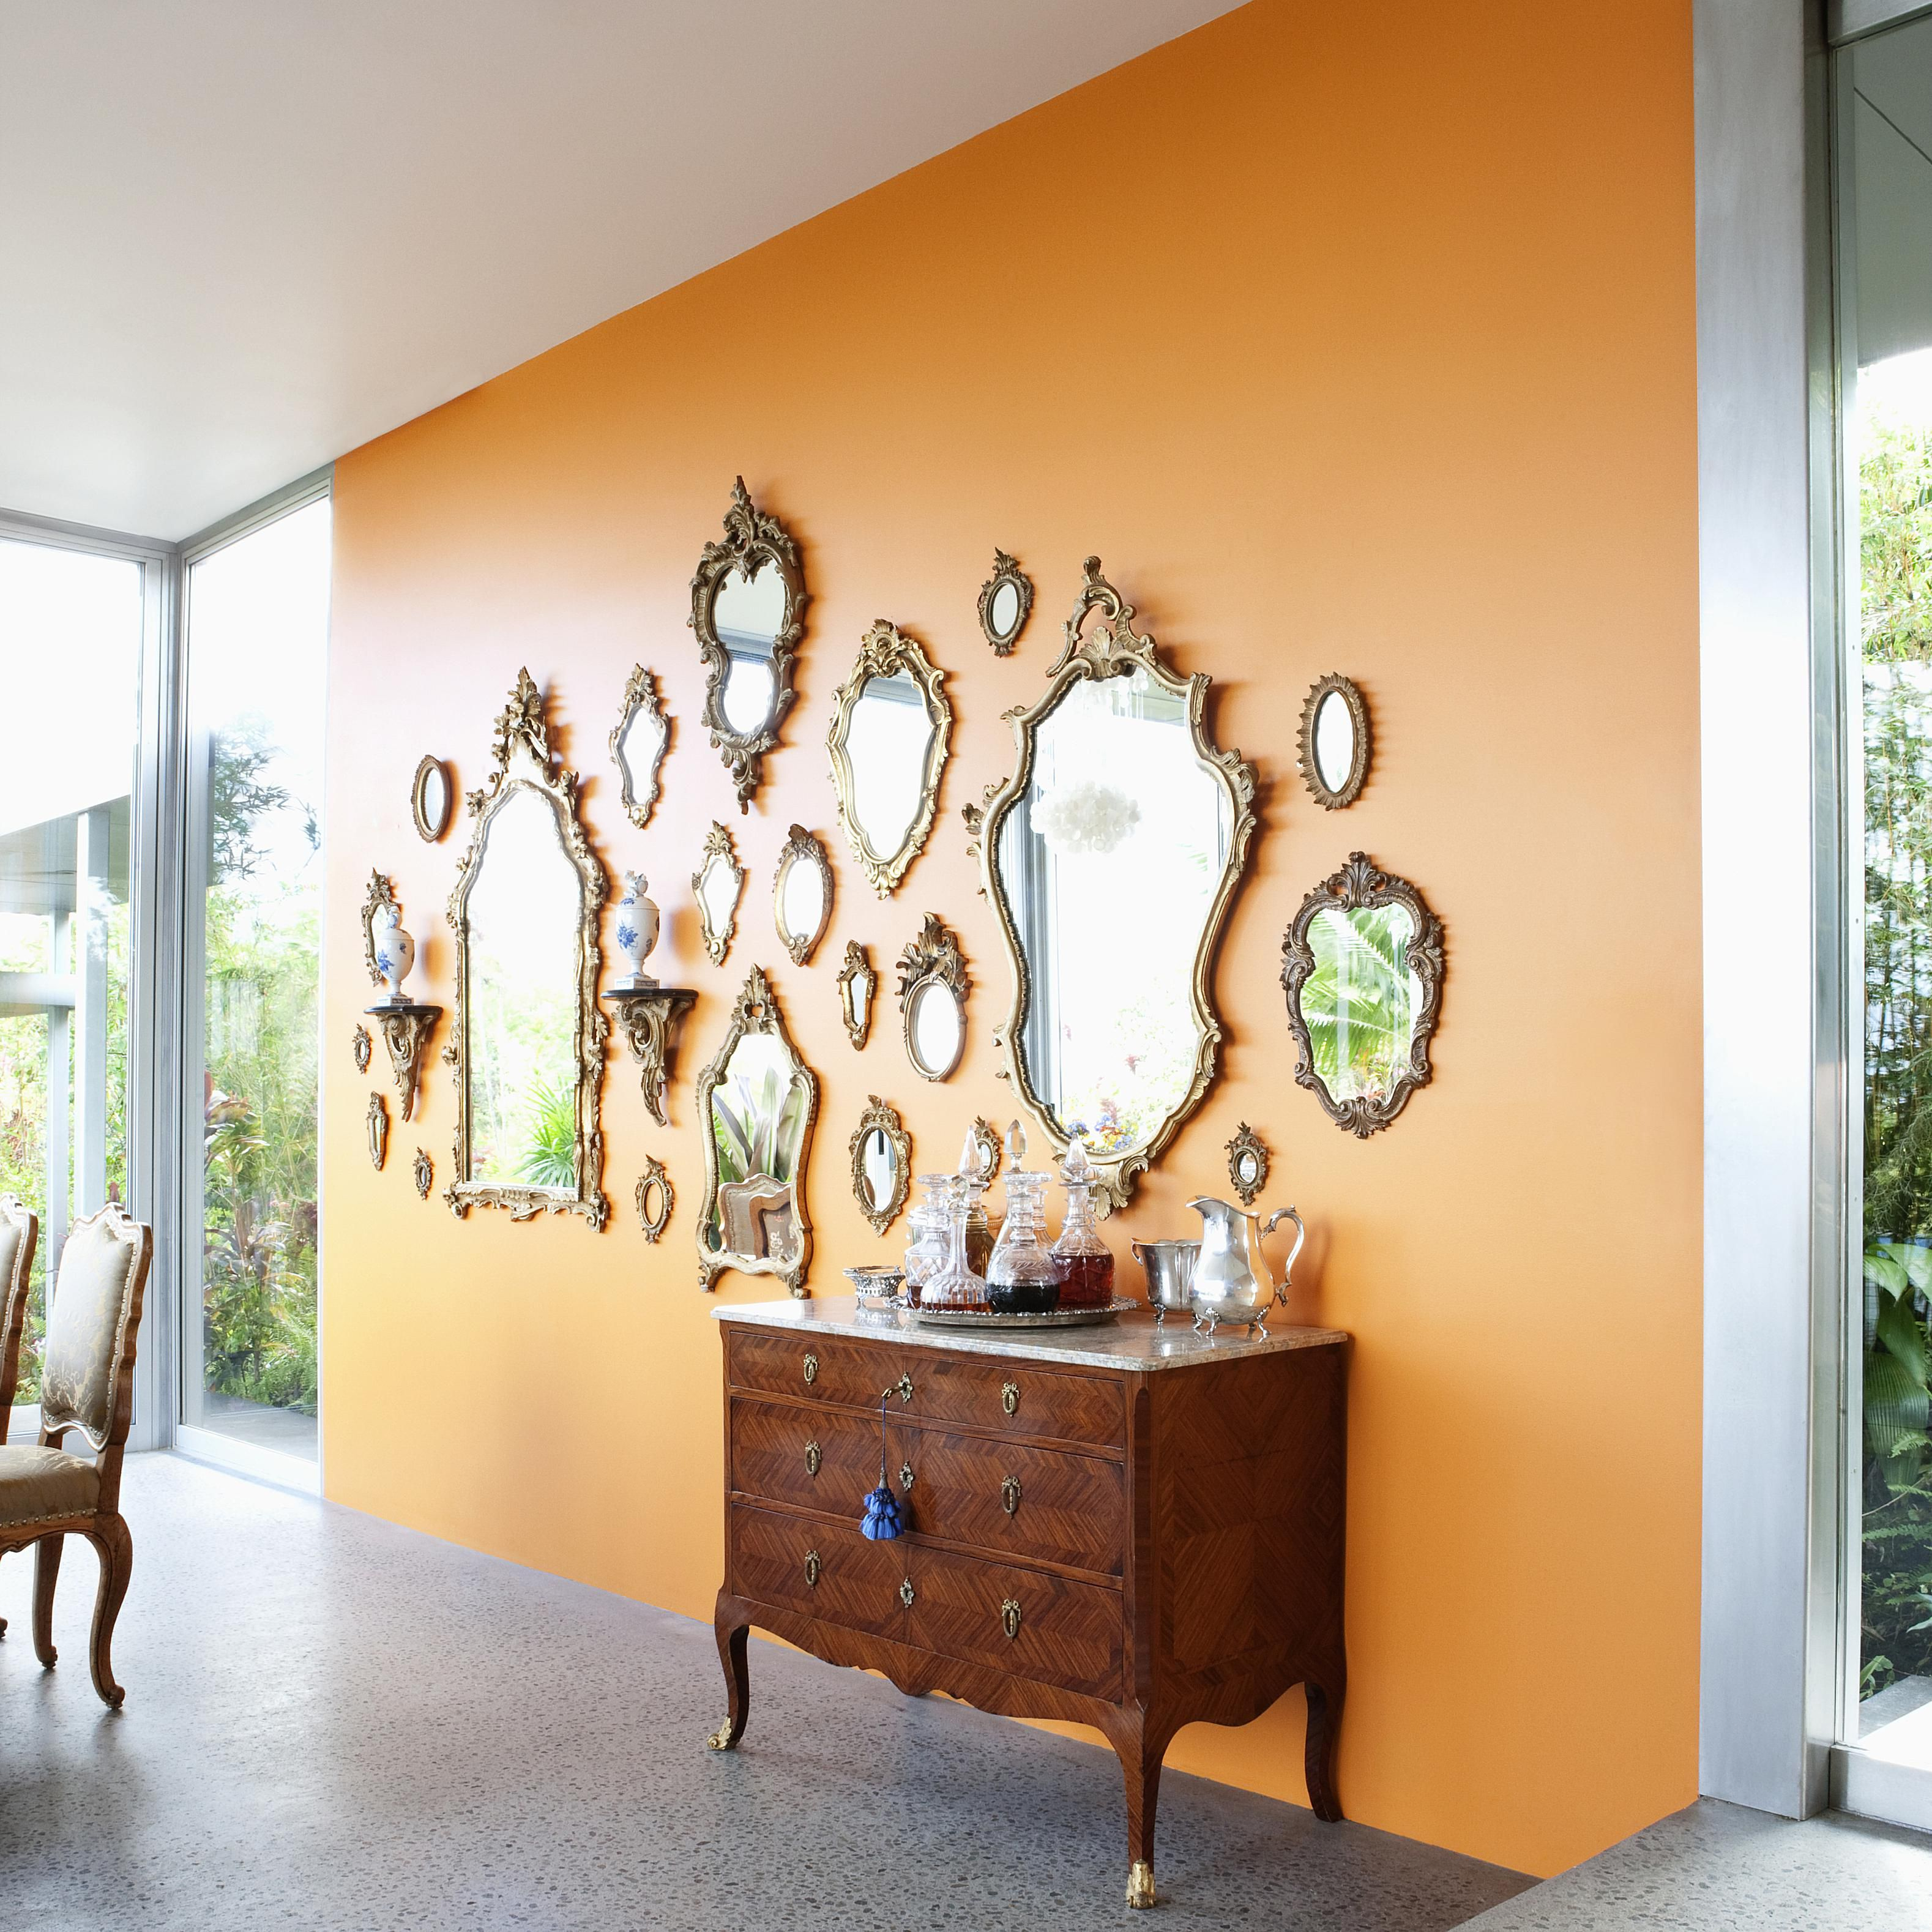 5 Amazing Interior Landscaping Ideas To Liven Up Your Home: Tips For Decorating With Antiques And Collectibles